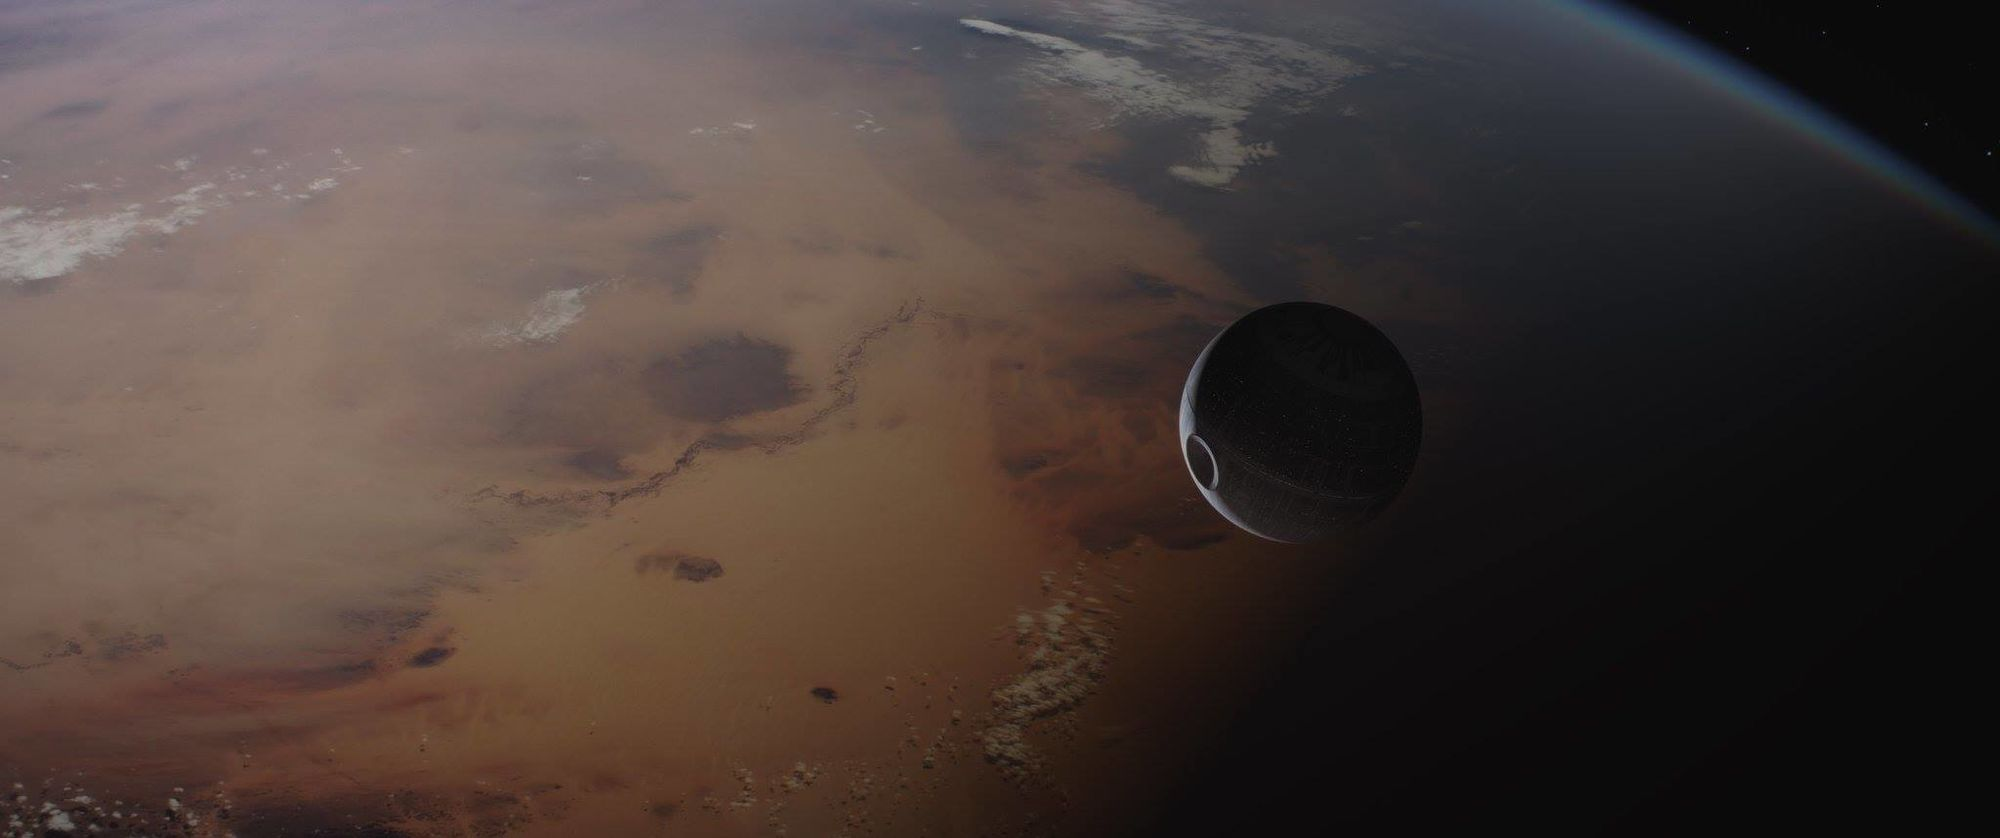 Jedha_and_the_Death_Star.jpg